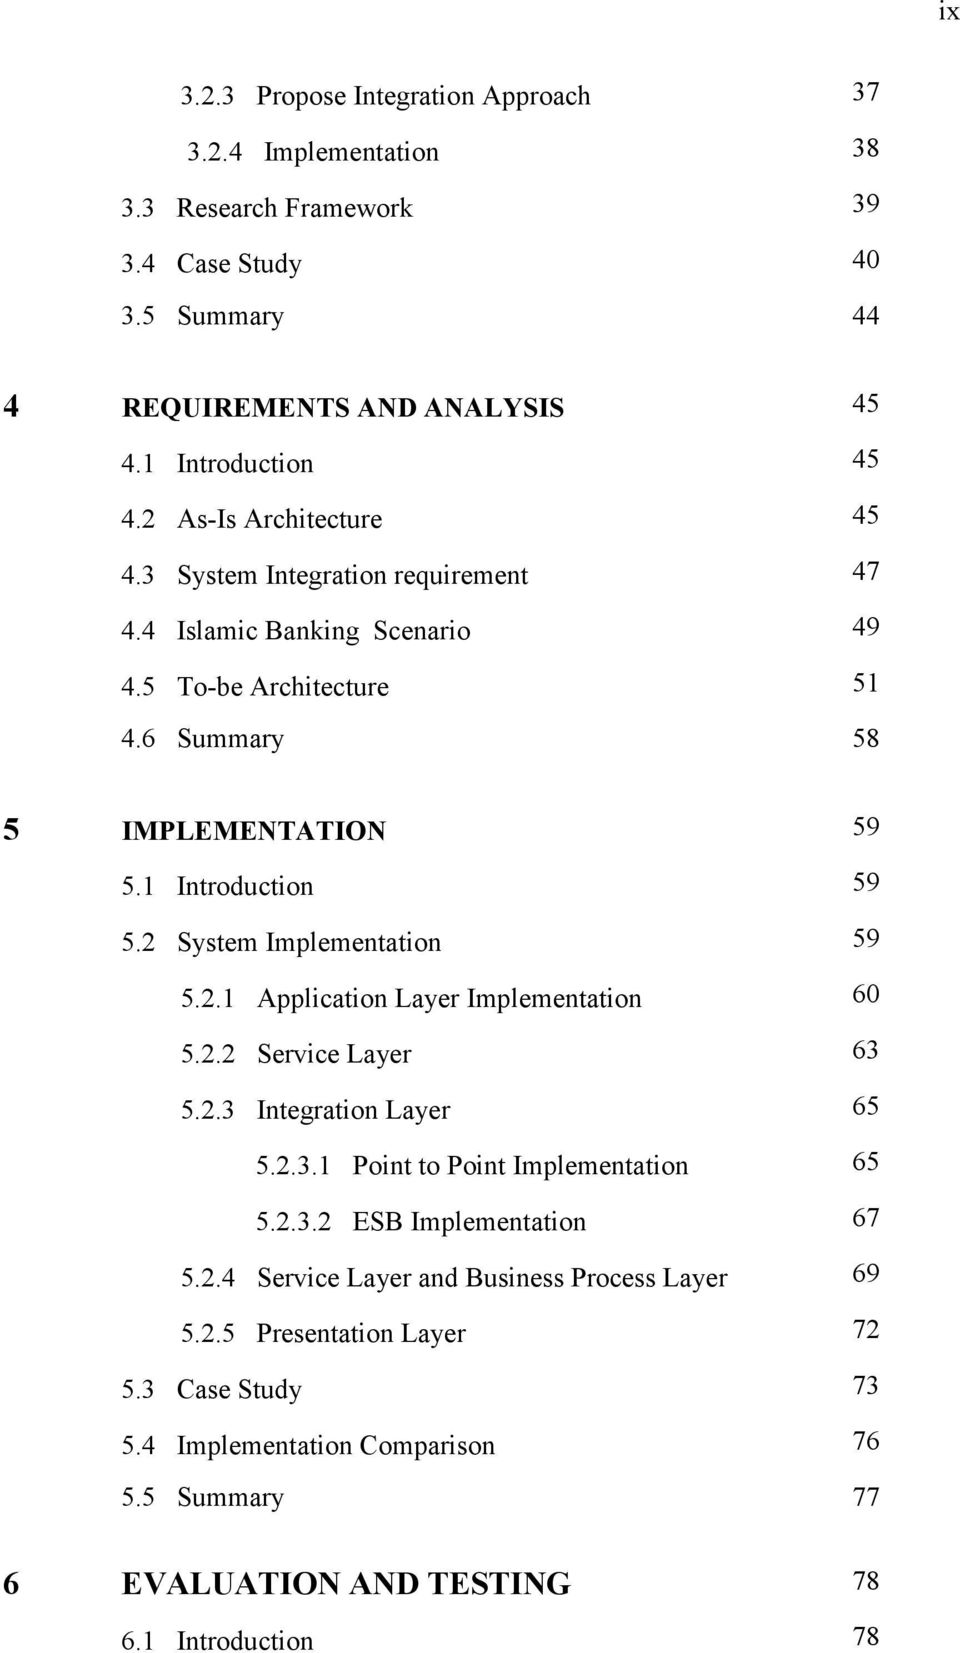 2 System Implementation 59 5.2.1 Application Layer Implementation 60 5.2.2 Service Layer 63 5.2.3 Integration Layer 65 5.2.3.1 Point to Point Implementation 65 5.2.3.2 ESB Implementation 67 5.